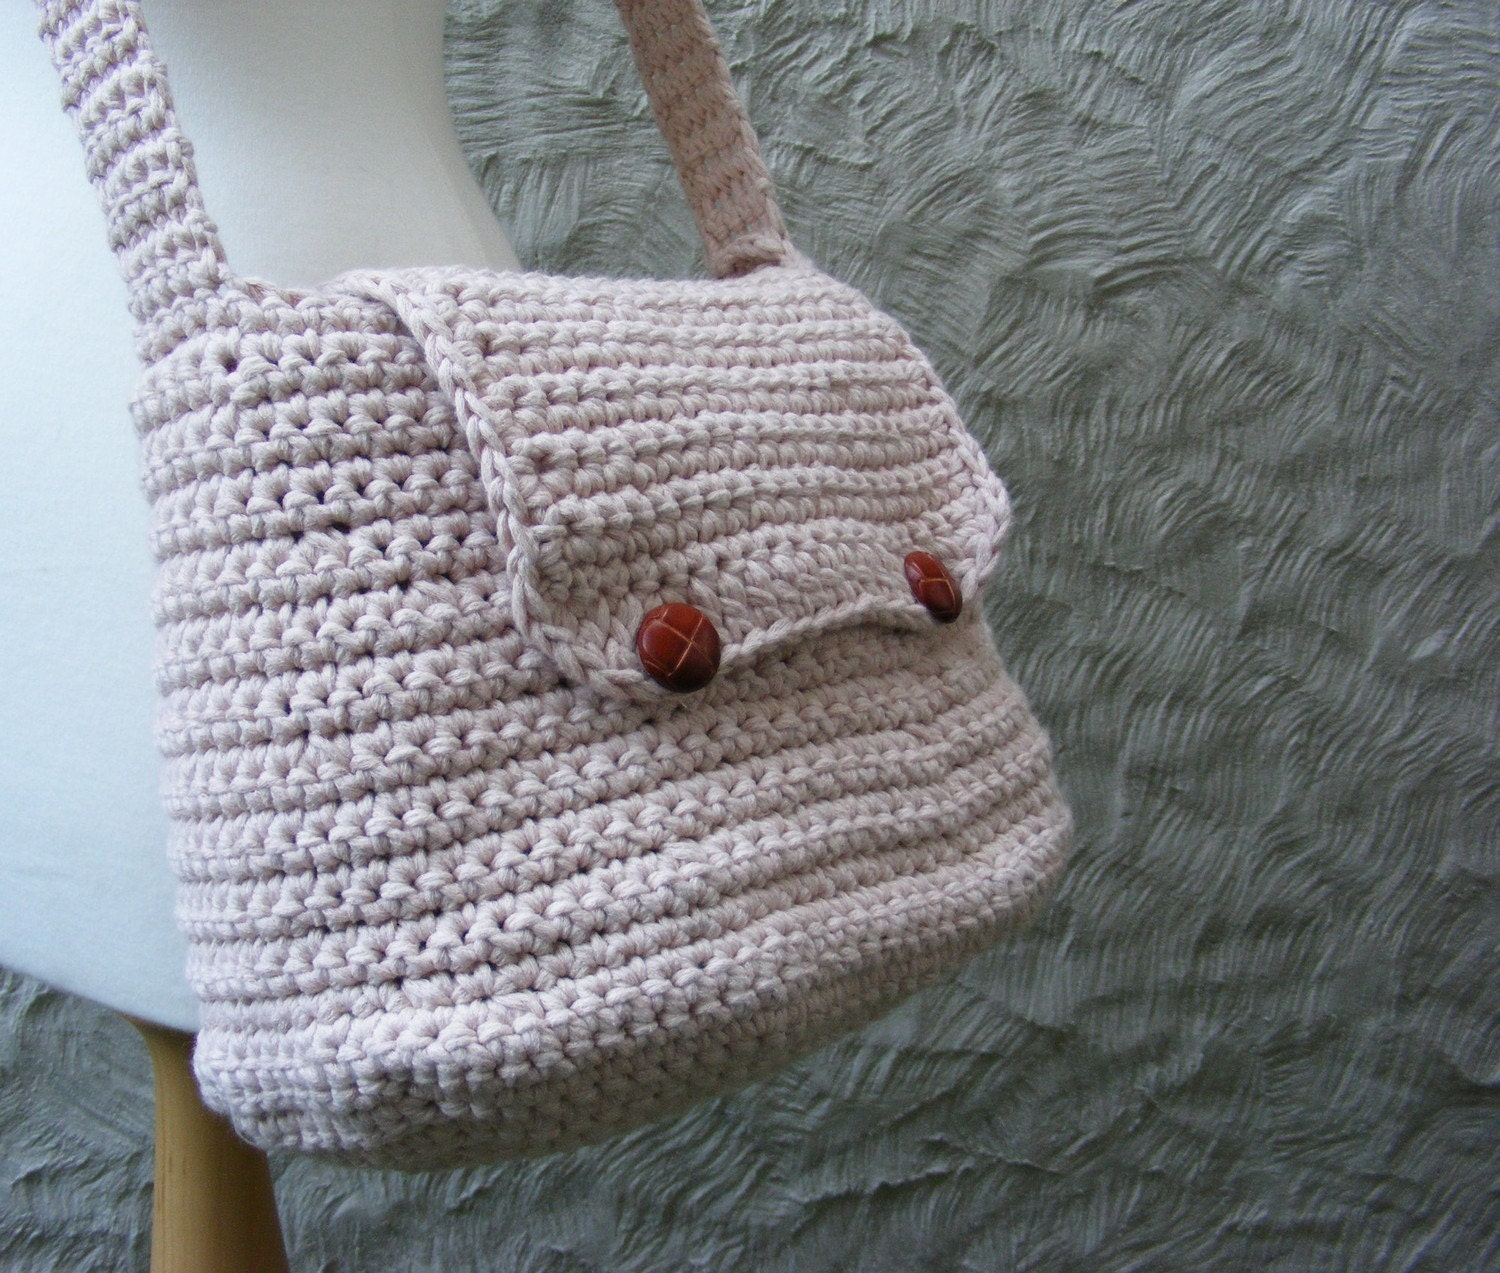 Free Patterns For Handbags : purse patterns free crochet bag and purse patterns little eyelash bag ...